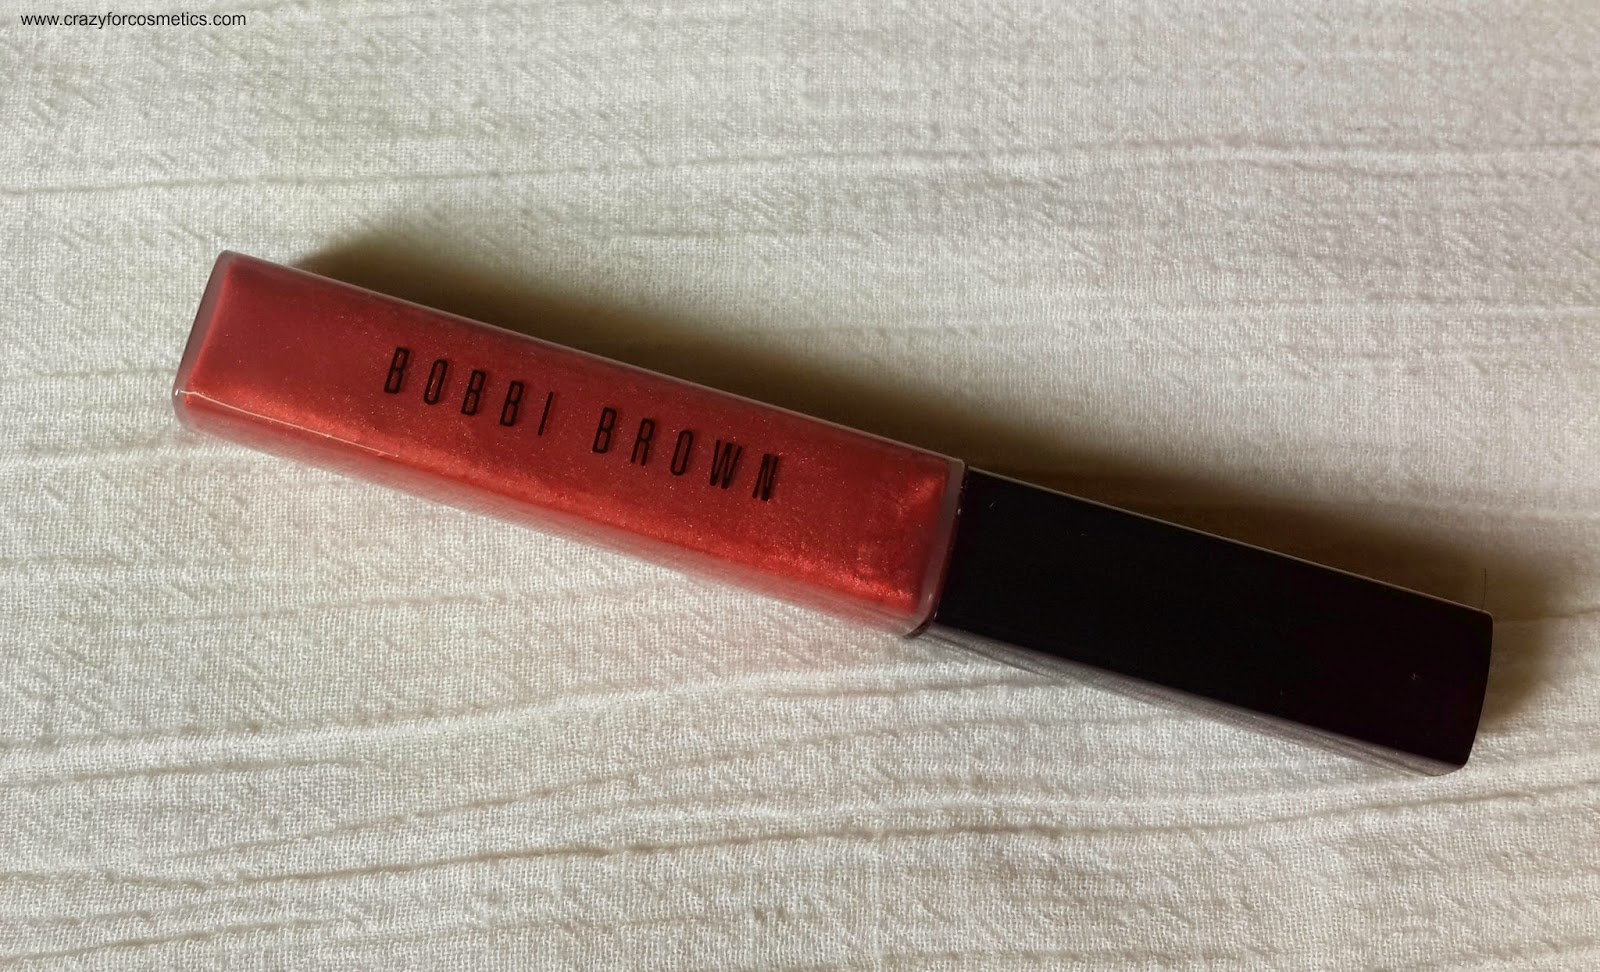 bobbi brown shimmer lip gloss Ruby Sugar review-bobbi brown shimmer lip gloss ruby sugar swatches